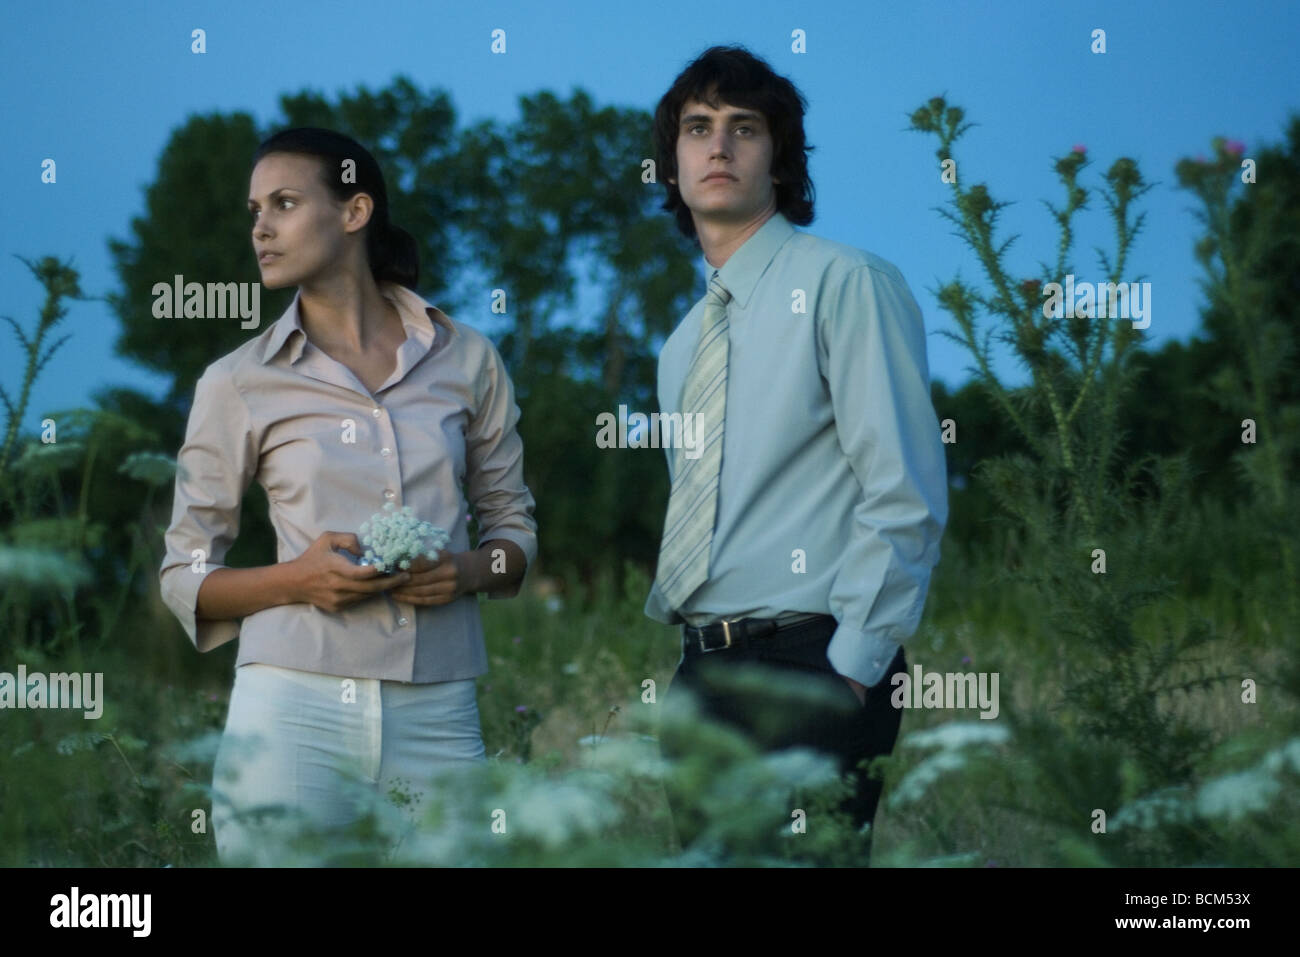 Couple standing in field, looking away, woman holding wildflowers - Stock Image